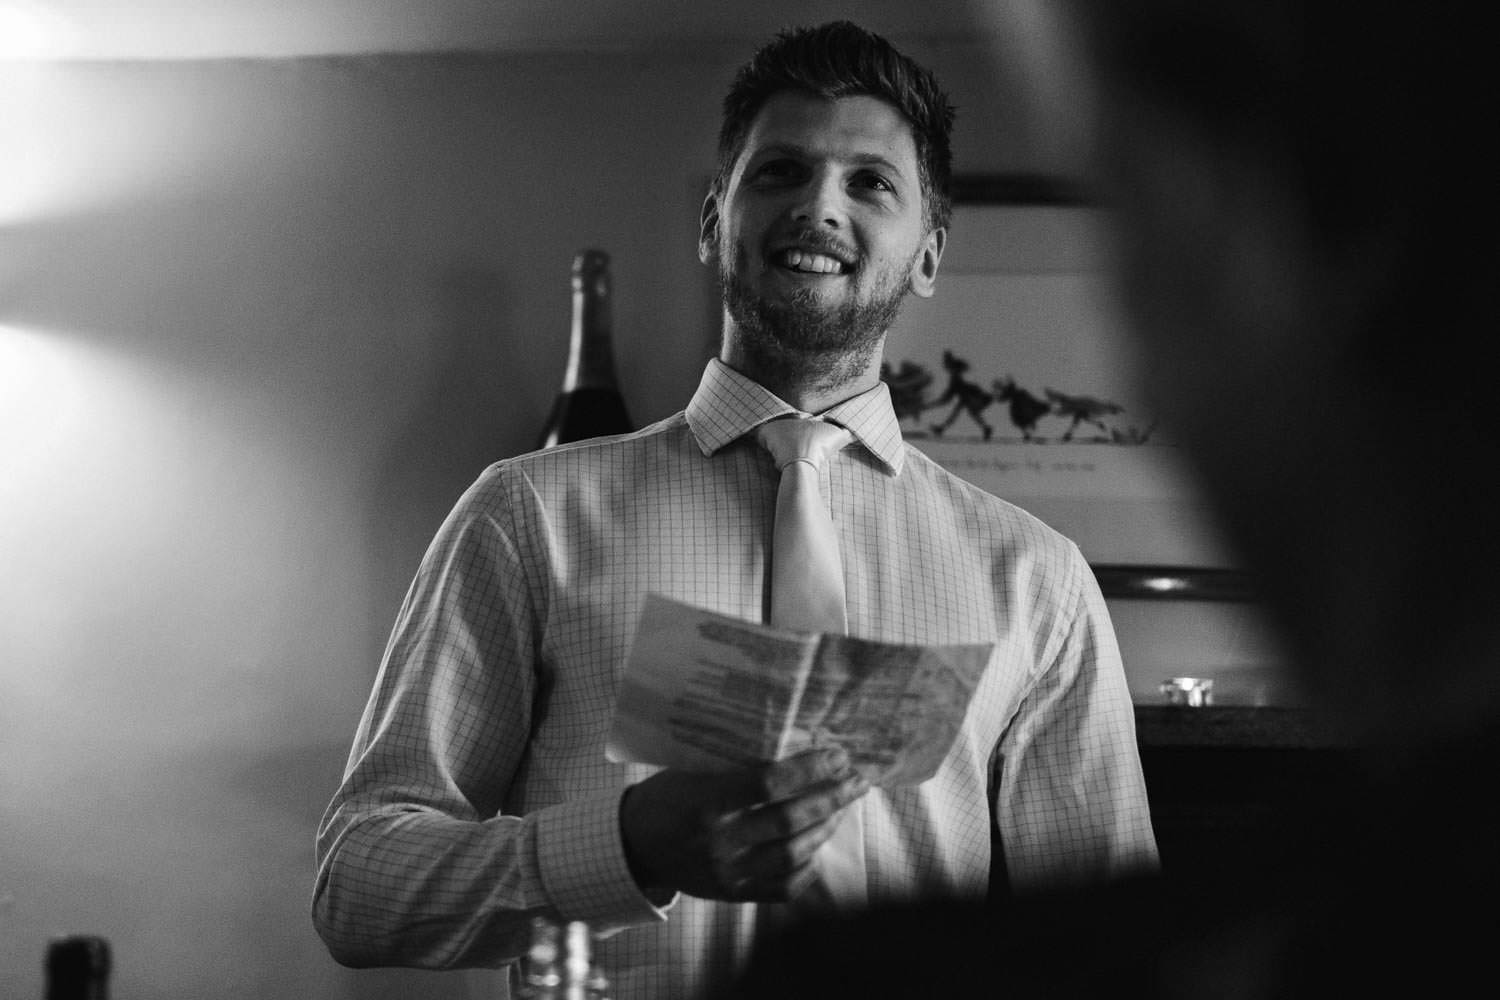 Candid photograph of groom giving his speech